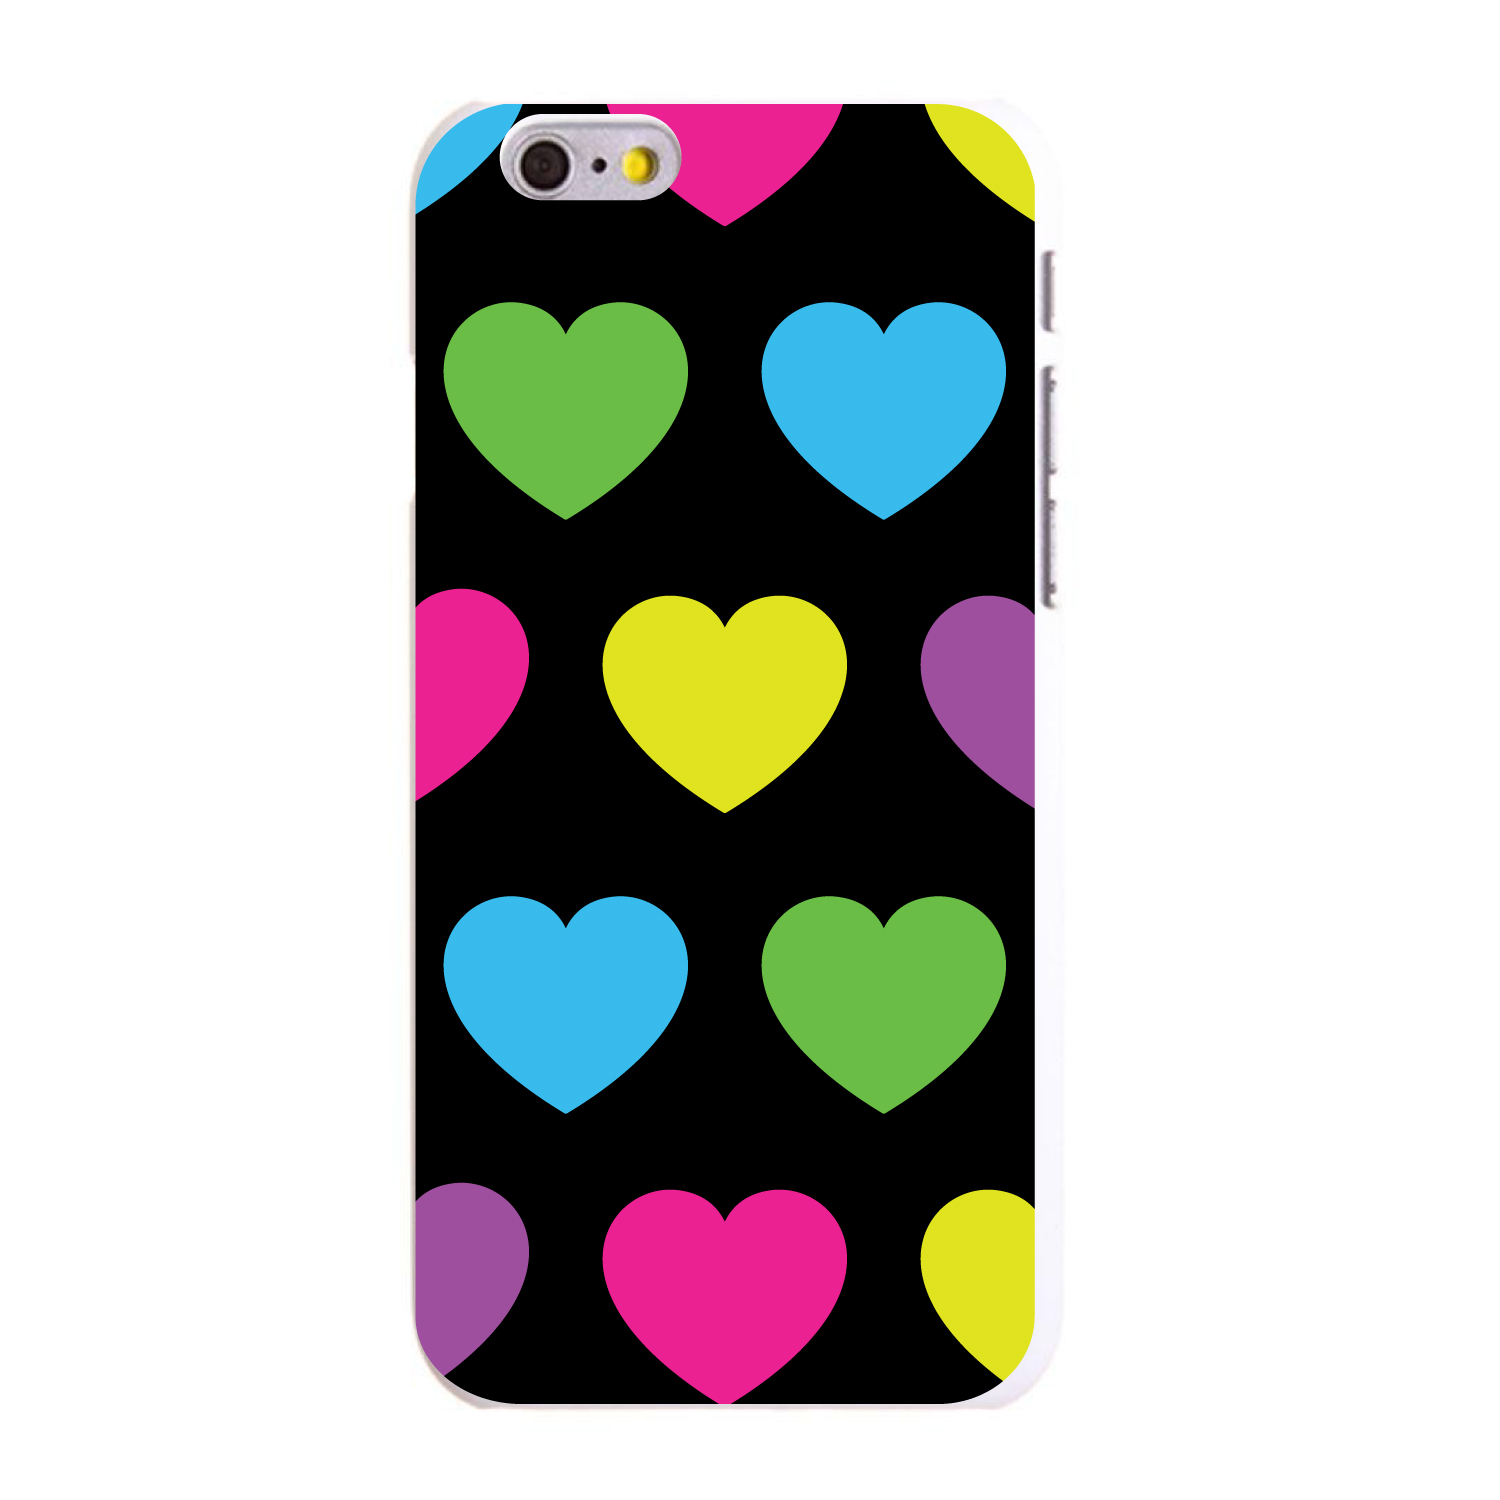 "CUSTOM White Hard Plastic Snap-On Case for Apple iPhone 6 / 6S (4.7"" Screen) - Black Multi Color Hearts"